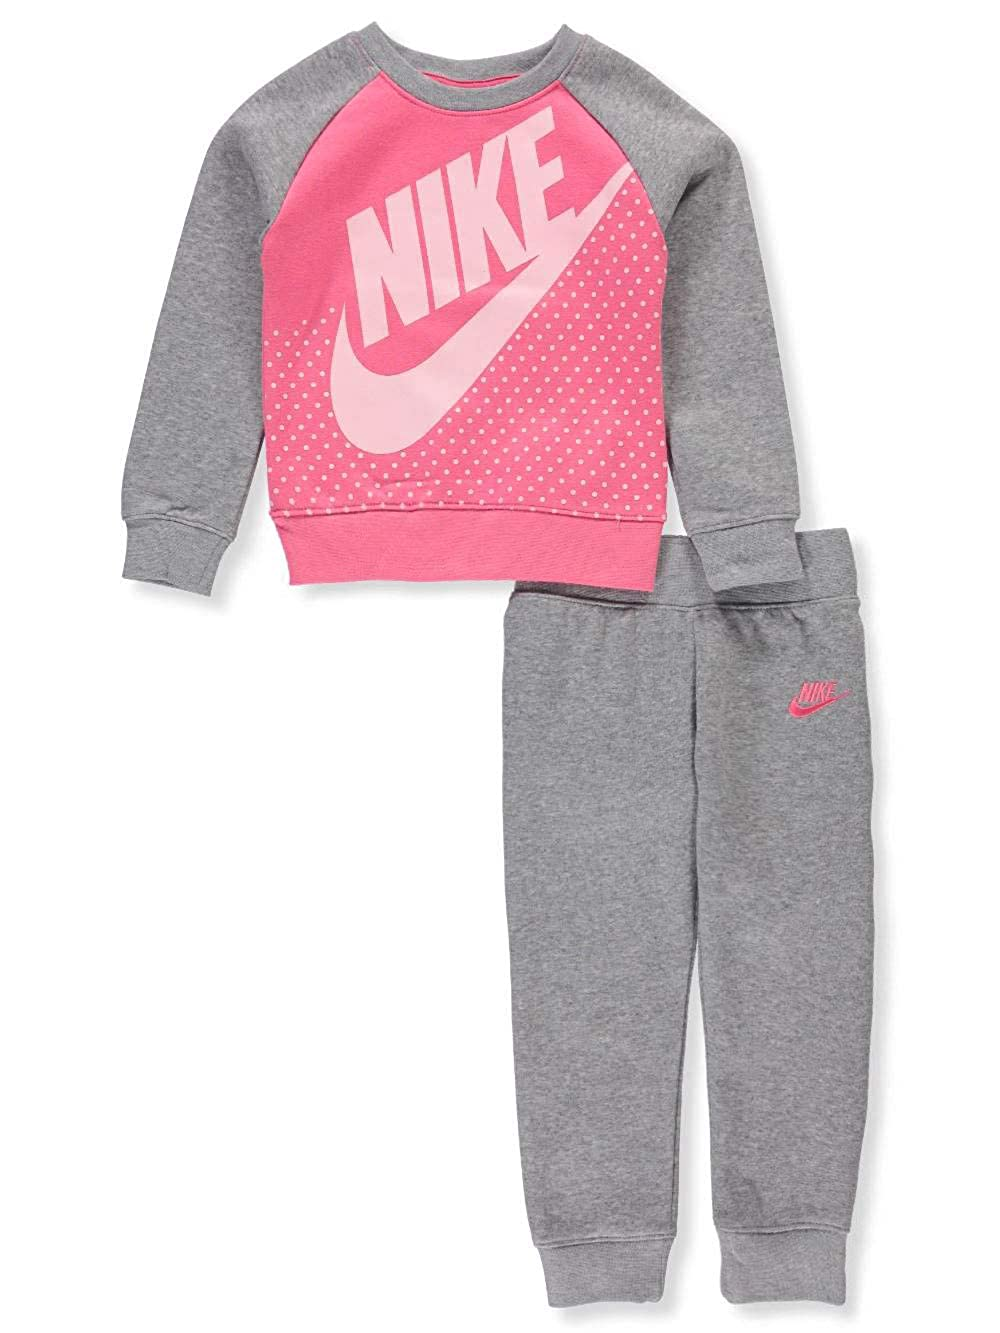 a6faa62f02484 Amazon.com: NIKE Girls' 2-Piece Sweatsuit Pants Set: Clothing